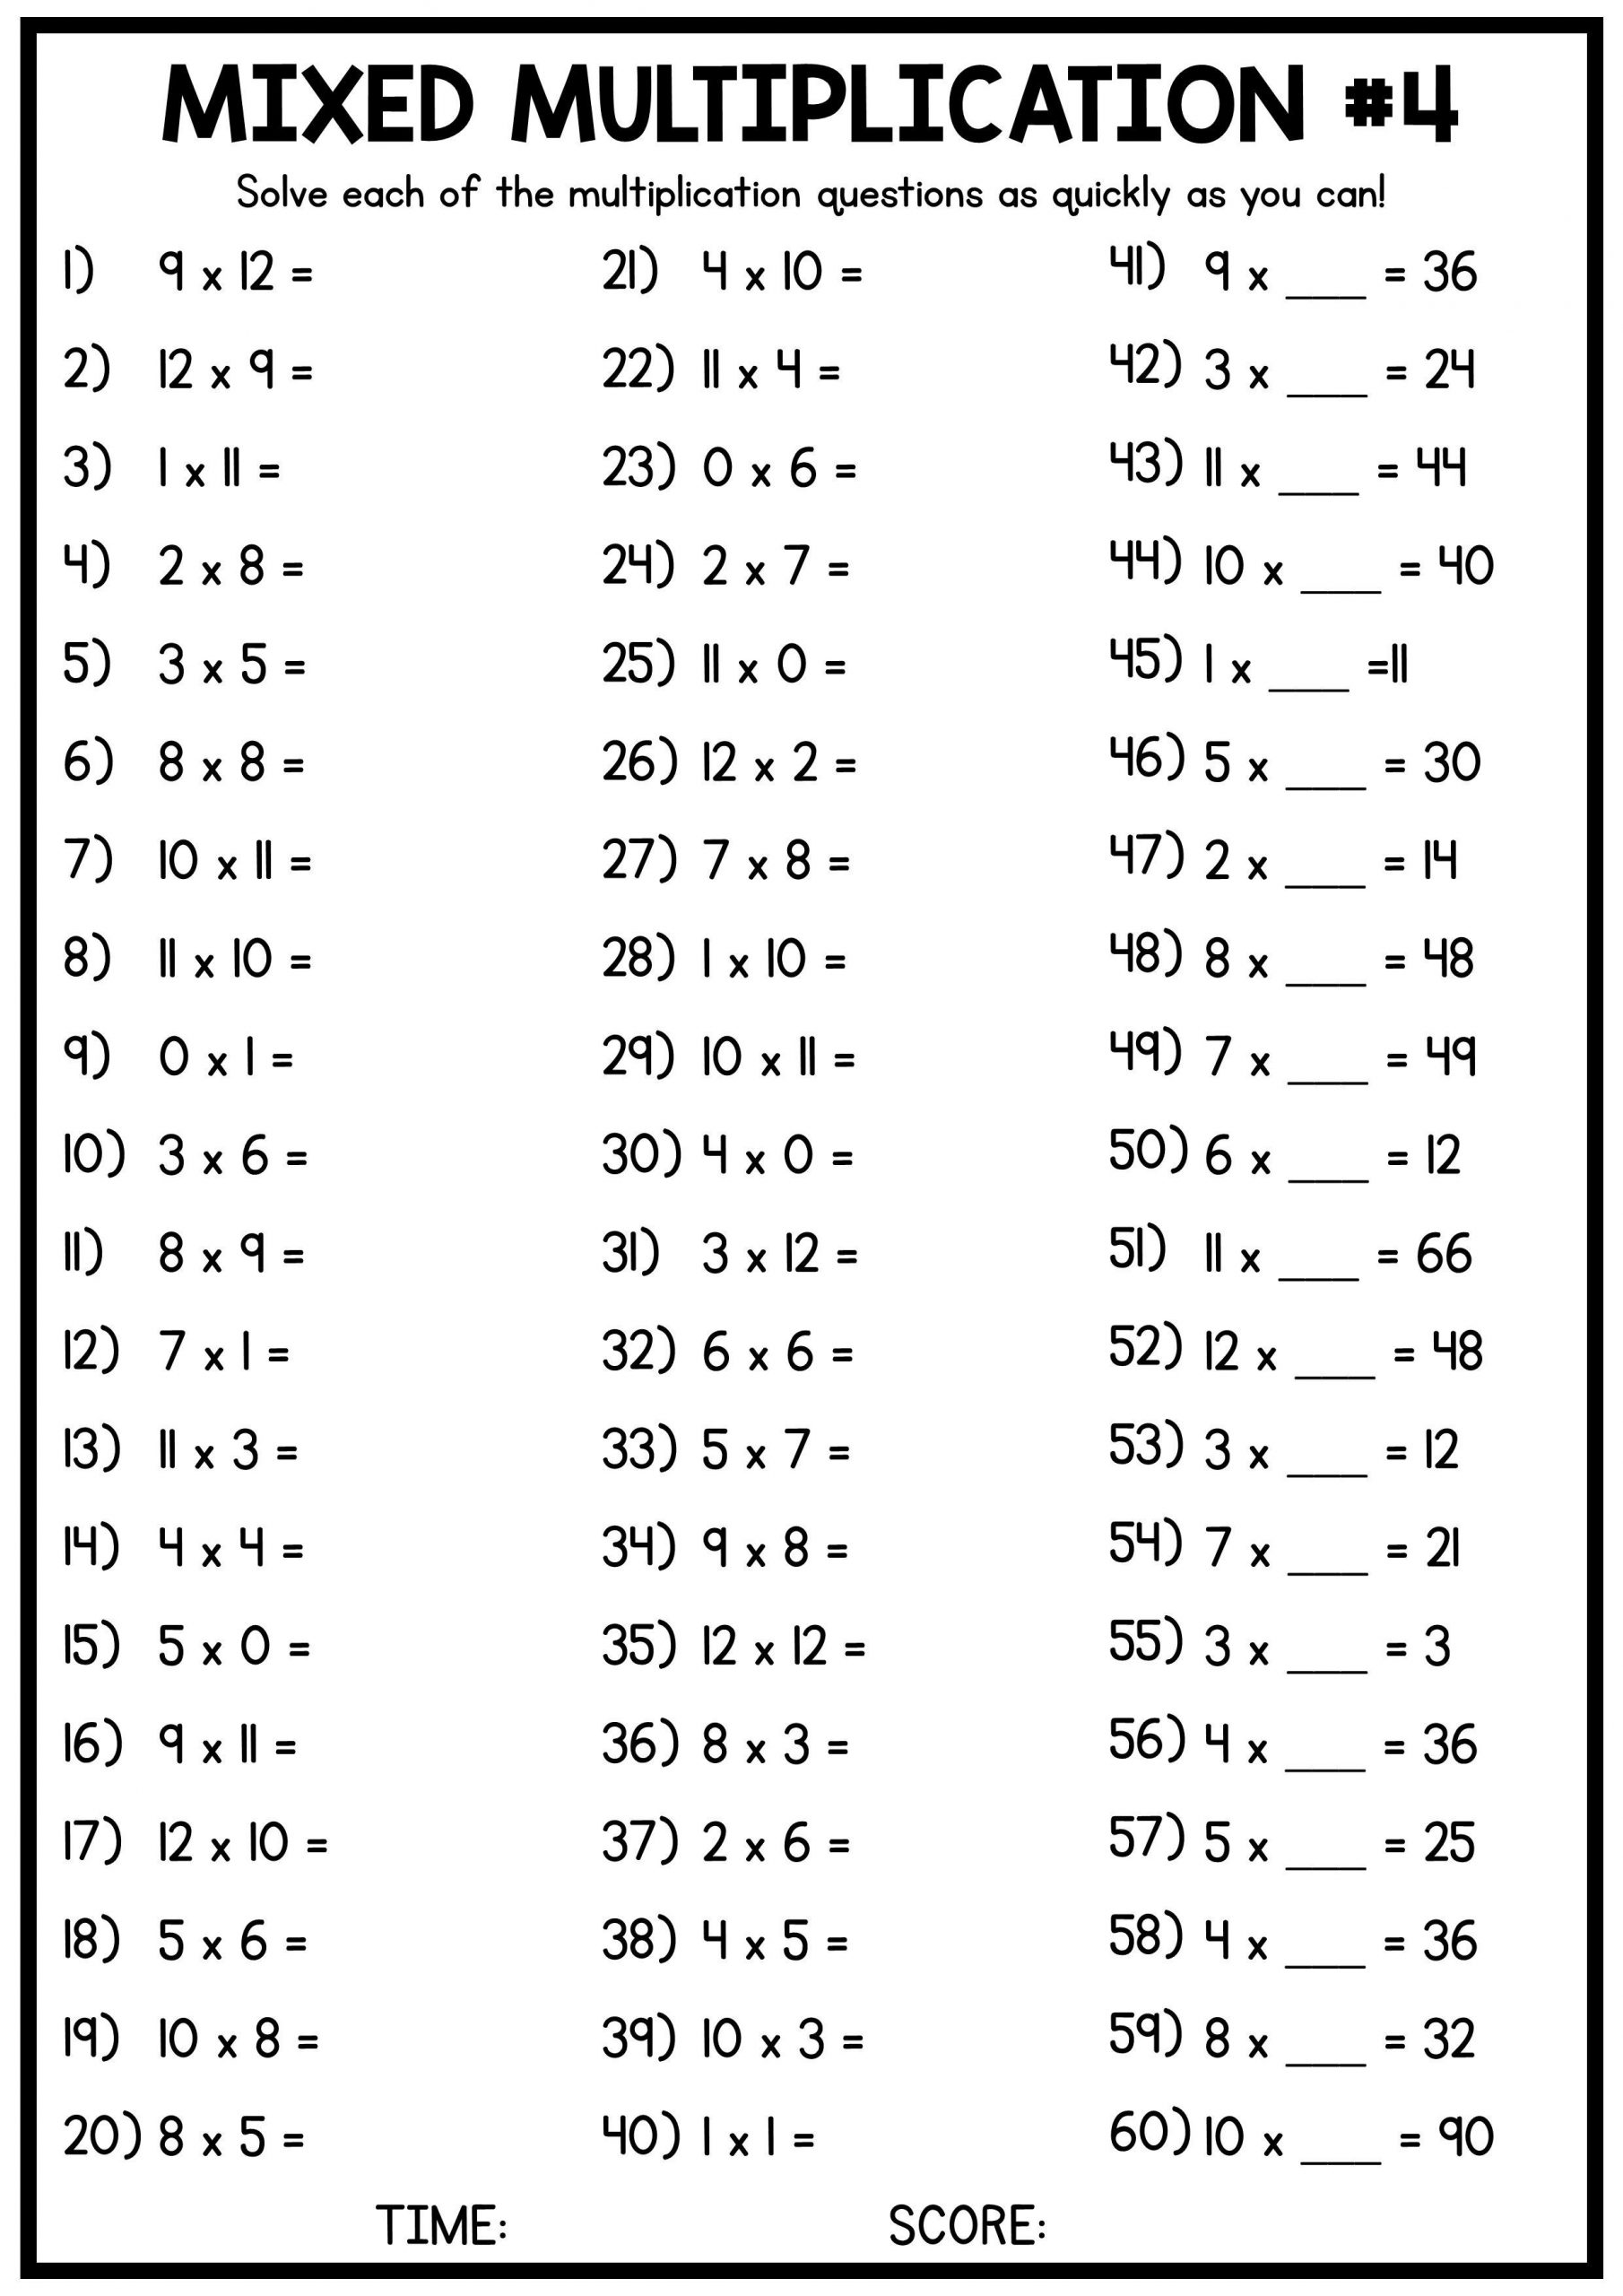 Mental Math Multiplication Worksheets Mixed Multiplication Times Table Worksheets 4 Free